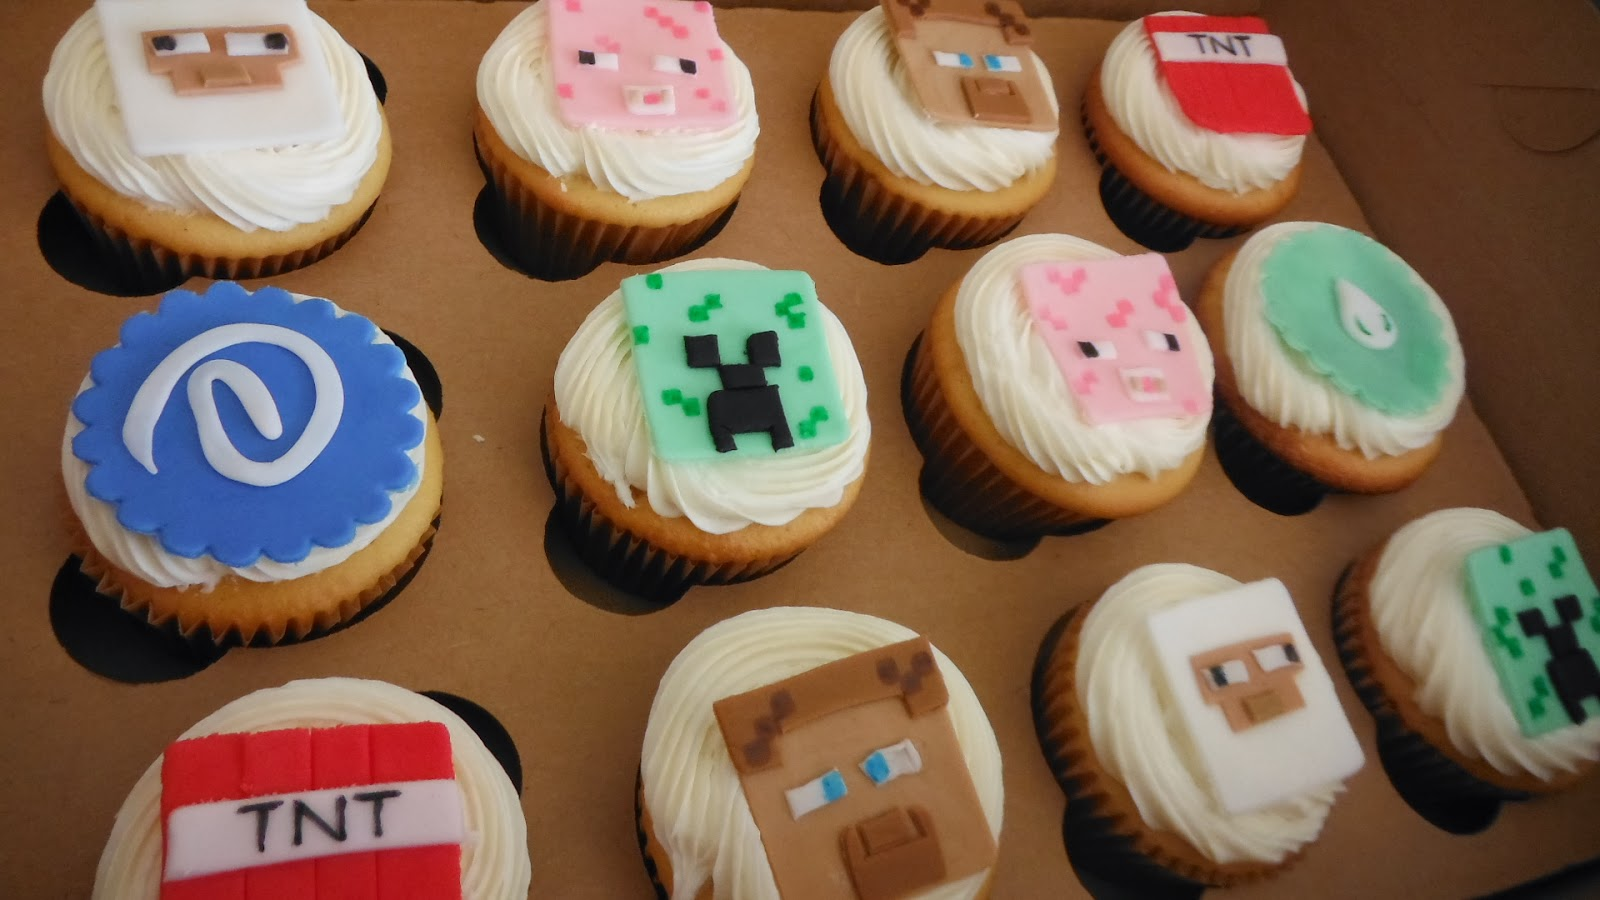 These Minecraft Cupcakes are an easy addition to any Minecraft birthday party Your Minecraft fan will love these Creeper Cupcakes